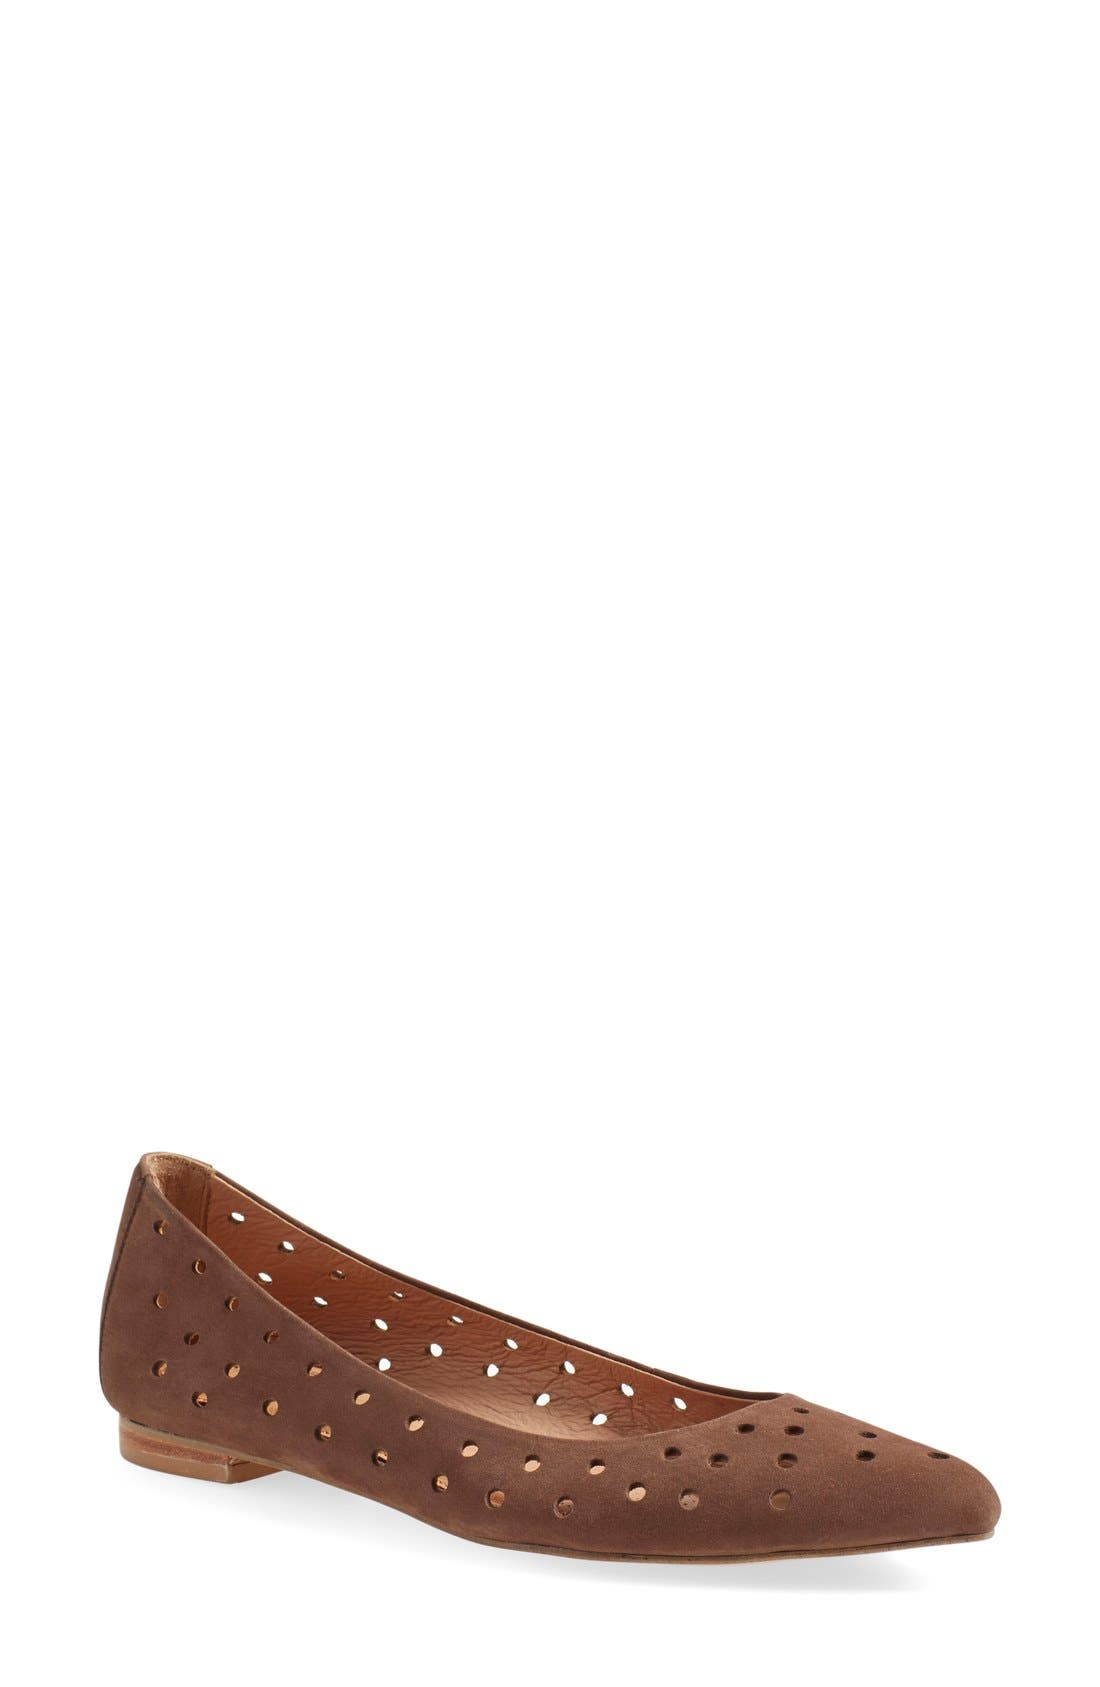 Alternate Image 1 Selected - Corso Como 'Gabrielle' Perforated Flat (Women)